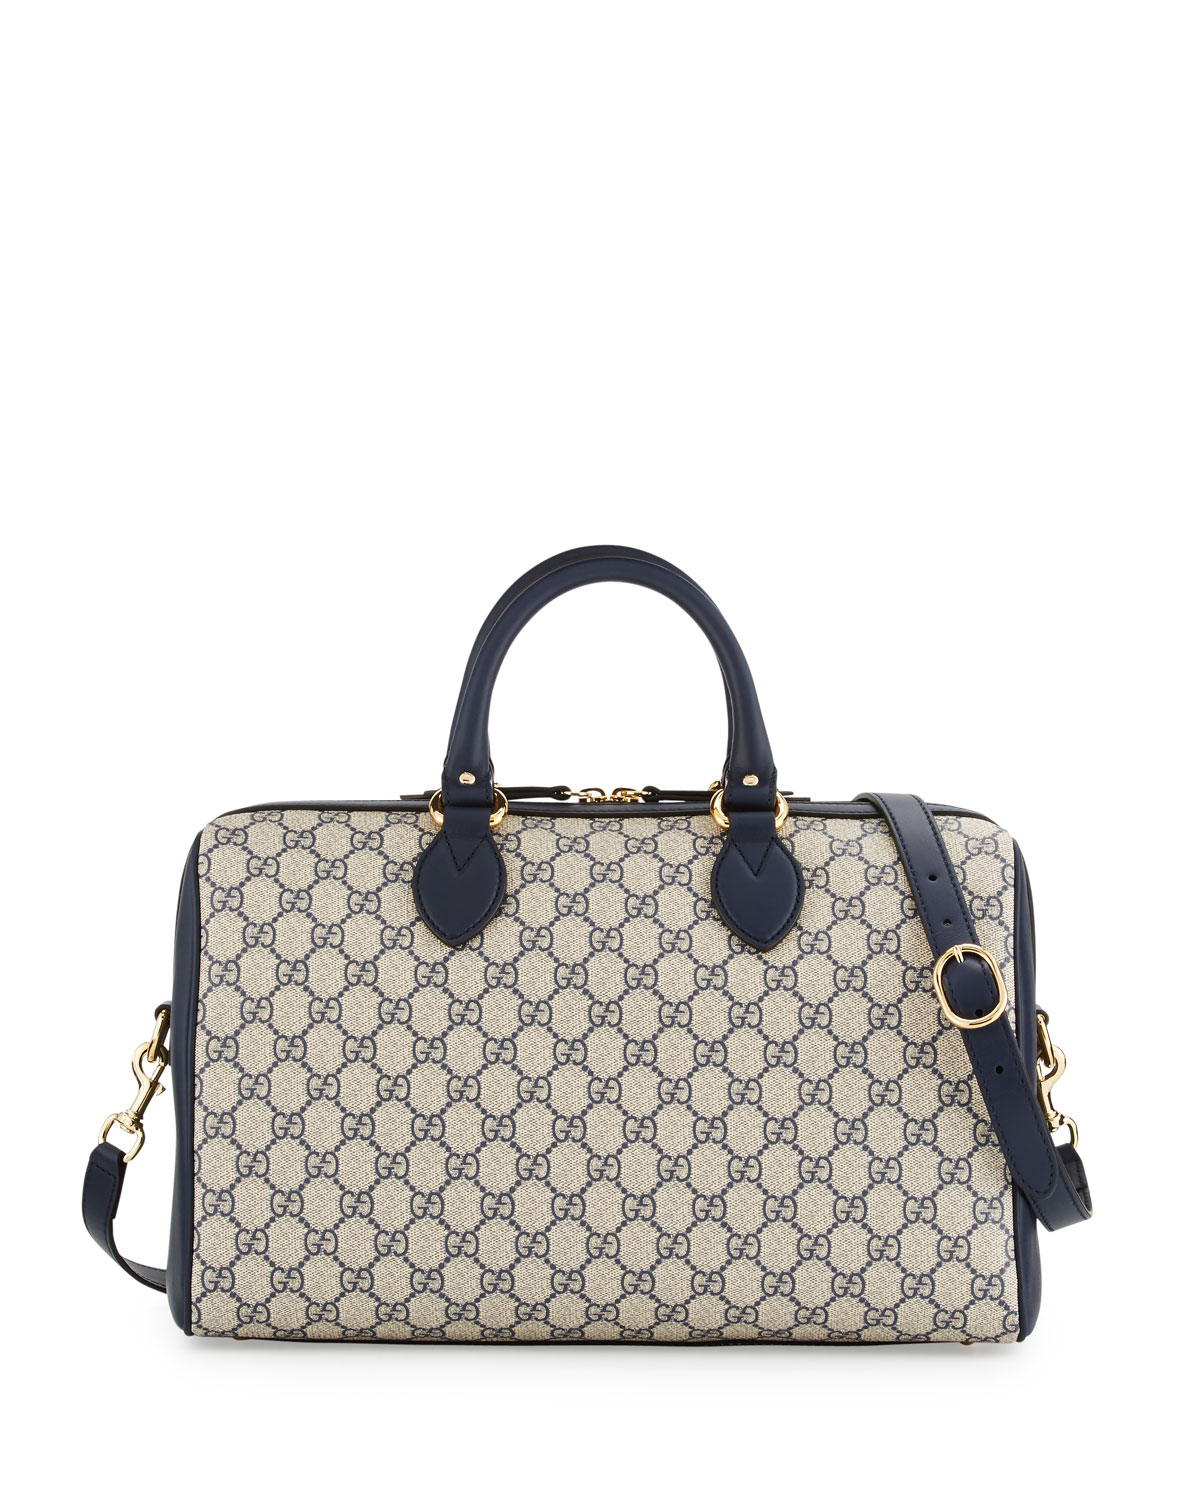 0e8add27c58a91 Gucci GG Supreme Top-Handle Large Boston Bag, Beige/Blue | Neiman Marcus